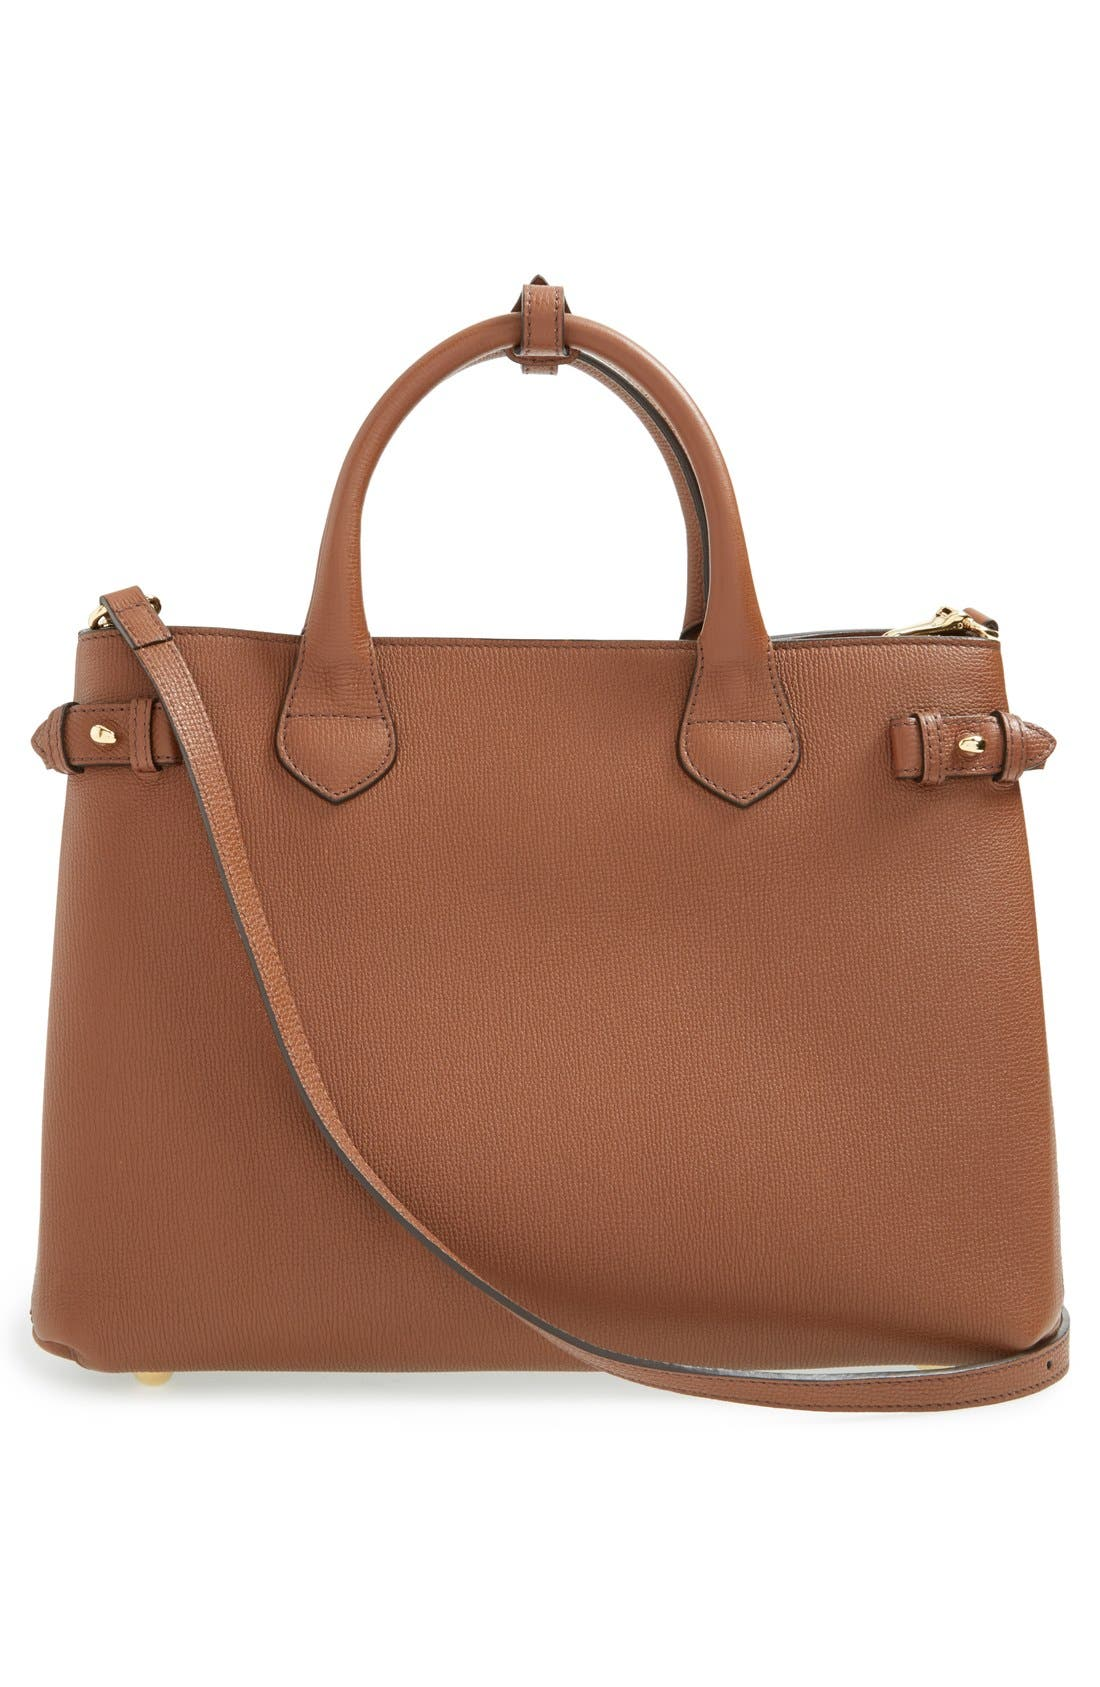 Medium Banner Leather Tote,                             Alternate thumbnail 6, color,                             250